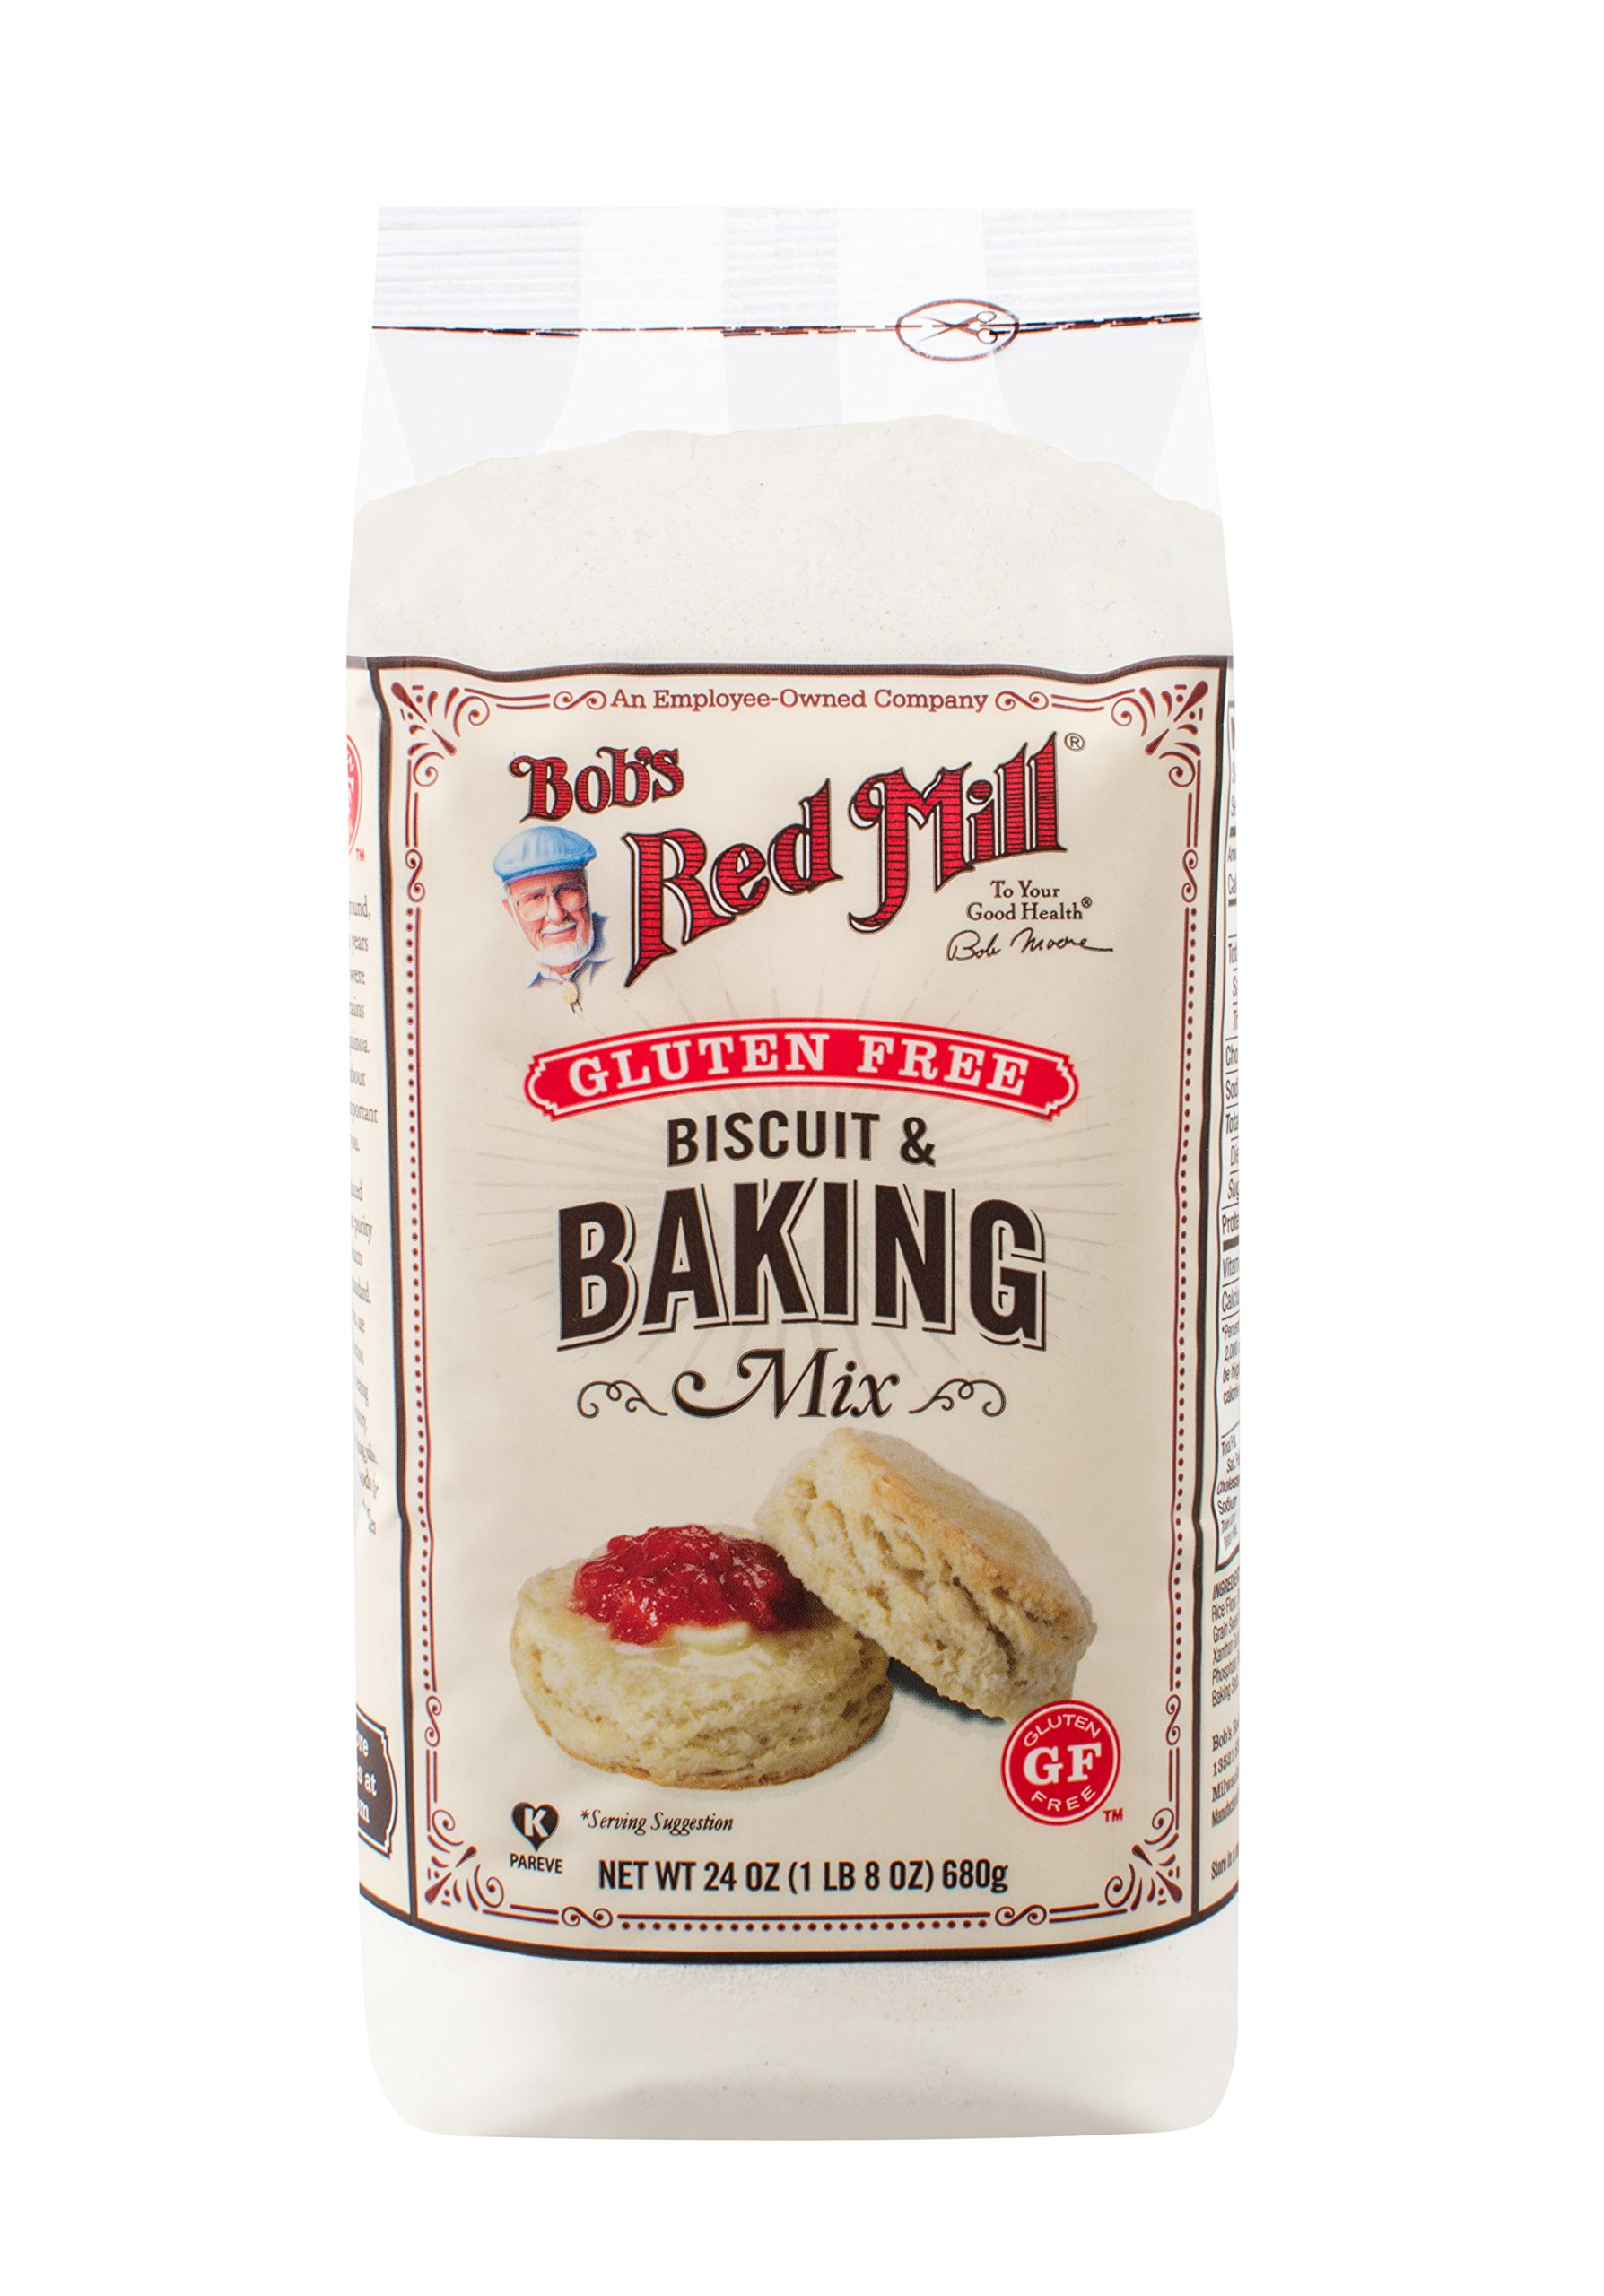 Bob's Red Mill Gluten Free Biscuit & Baking Mix, 24-ounce by Bob's Red Mill (Image #1)